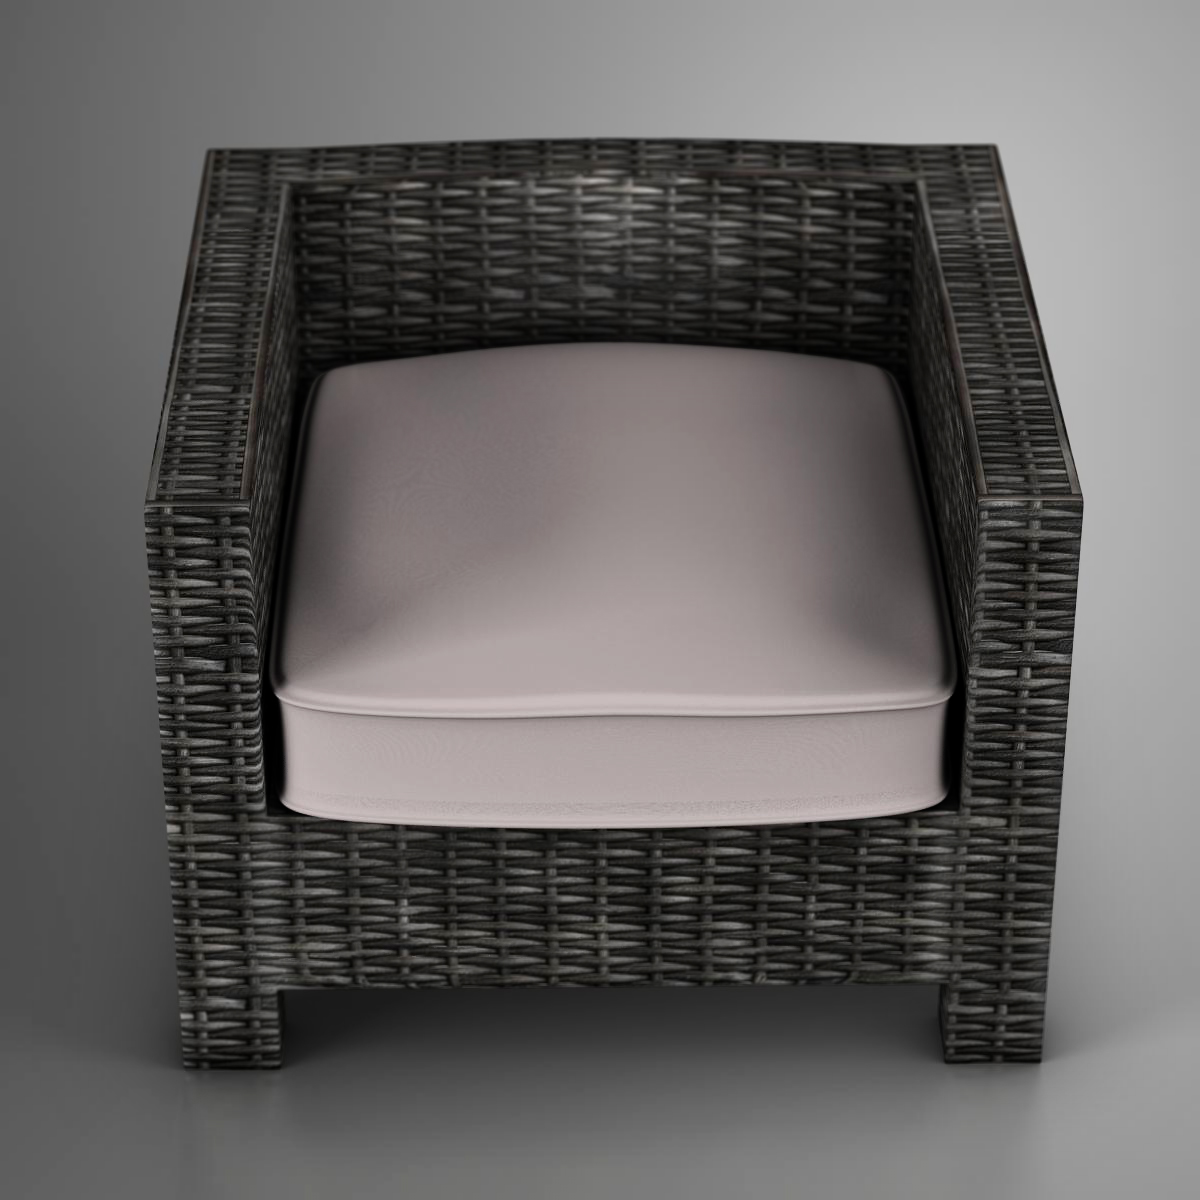 wicker couch 3d model 3ds max fbx c4d ma mb obj 162333